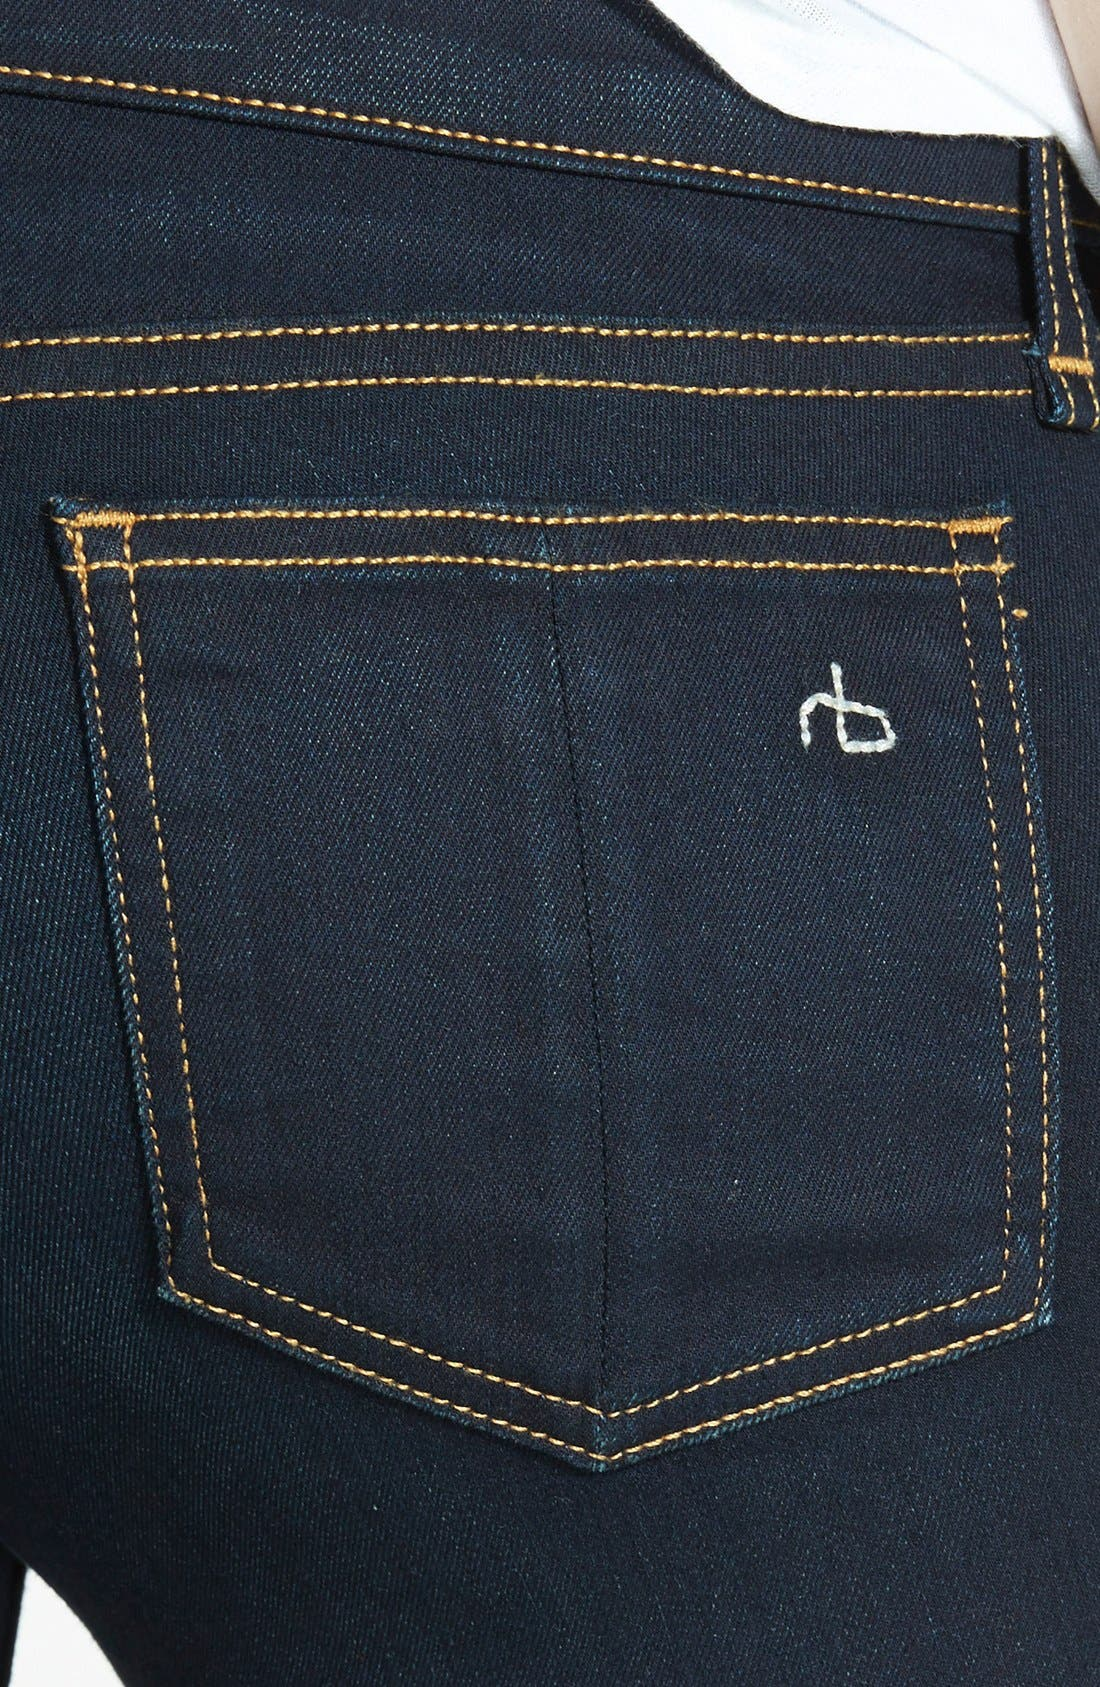 Alternate Image 3  - rag & bone/JEAN 'The Skinny' Mid Rise Jeans (Coventry)